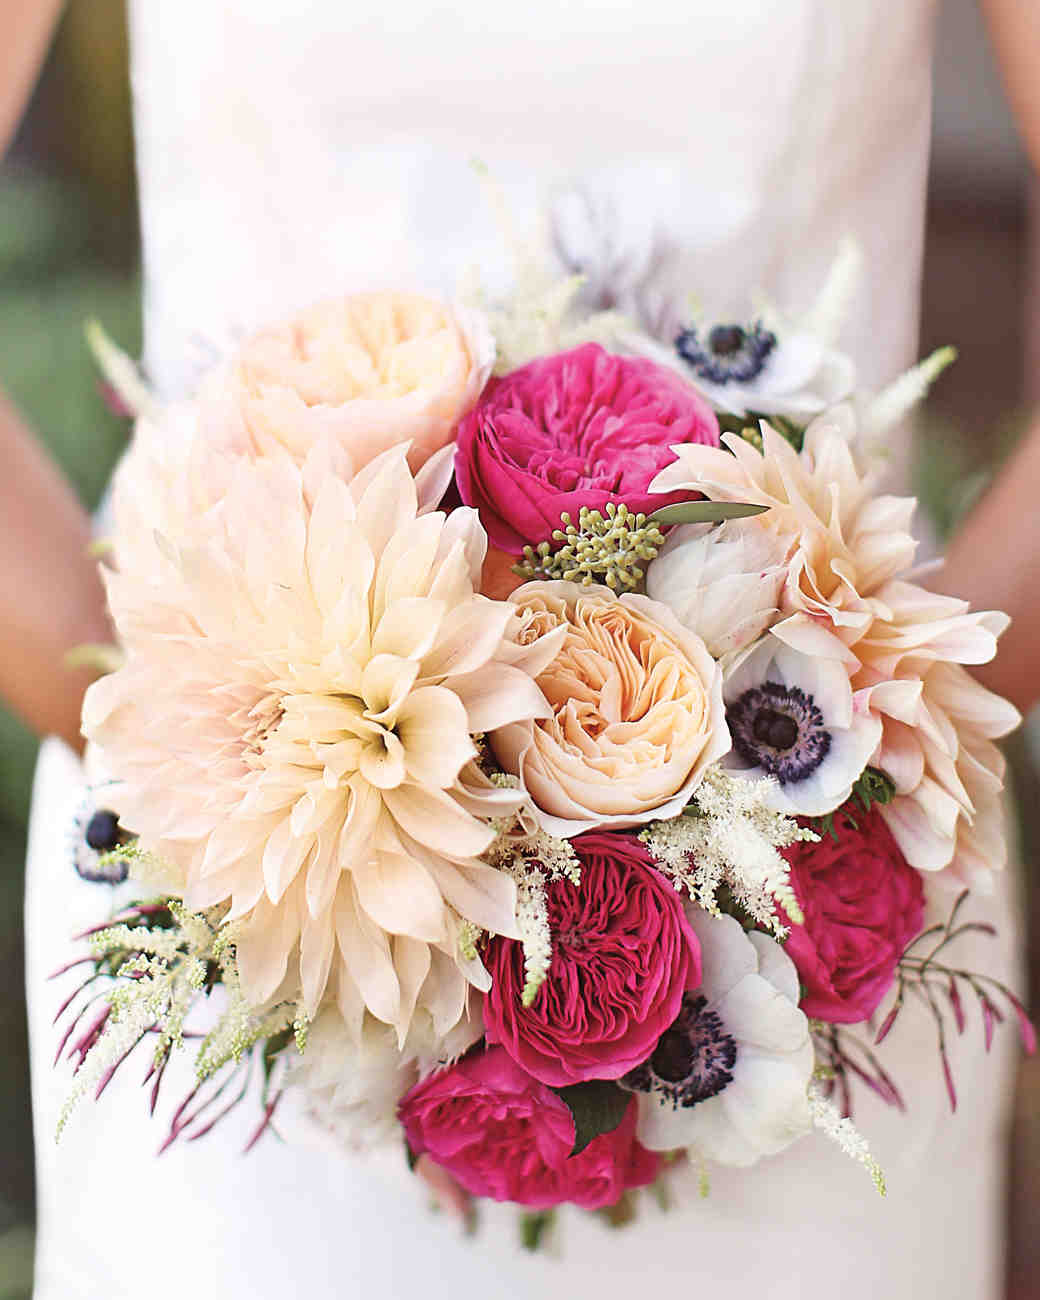 bouquet-003-mwd109359.jpg